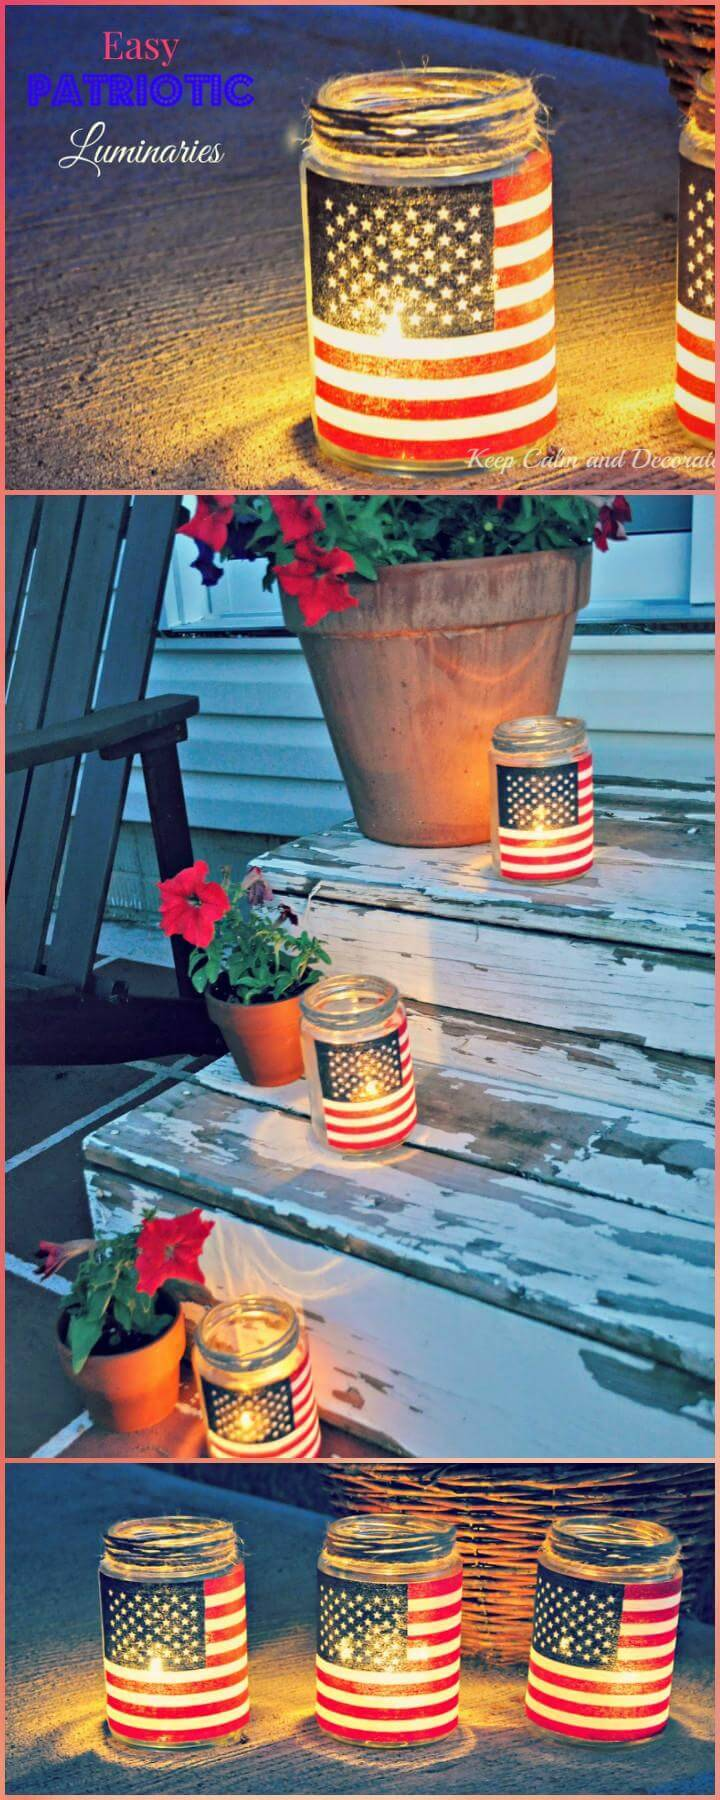 Repurposed Mason Jar Patriotic Luminaries